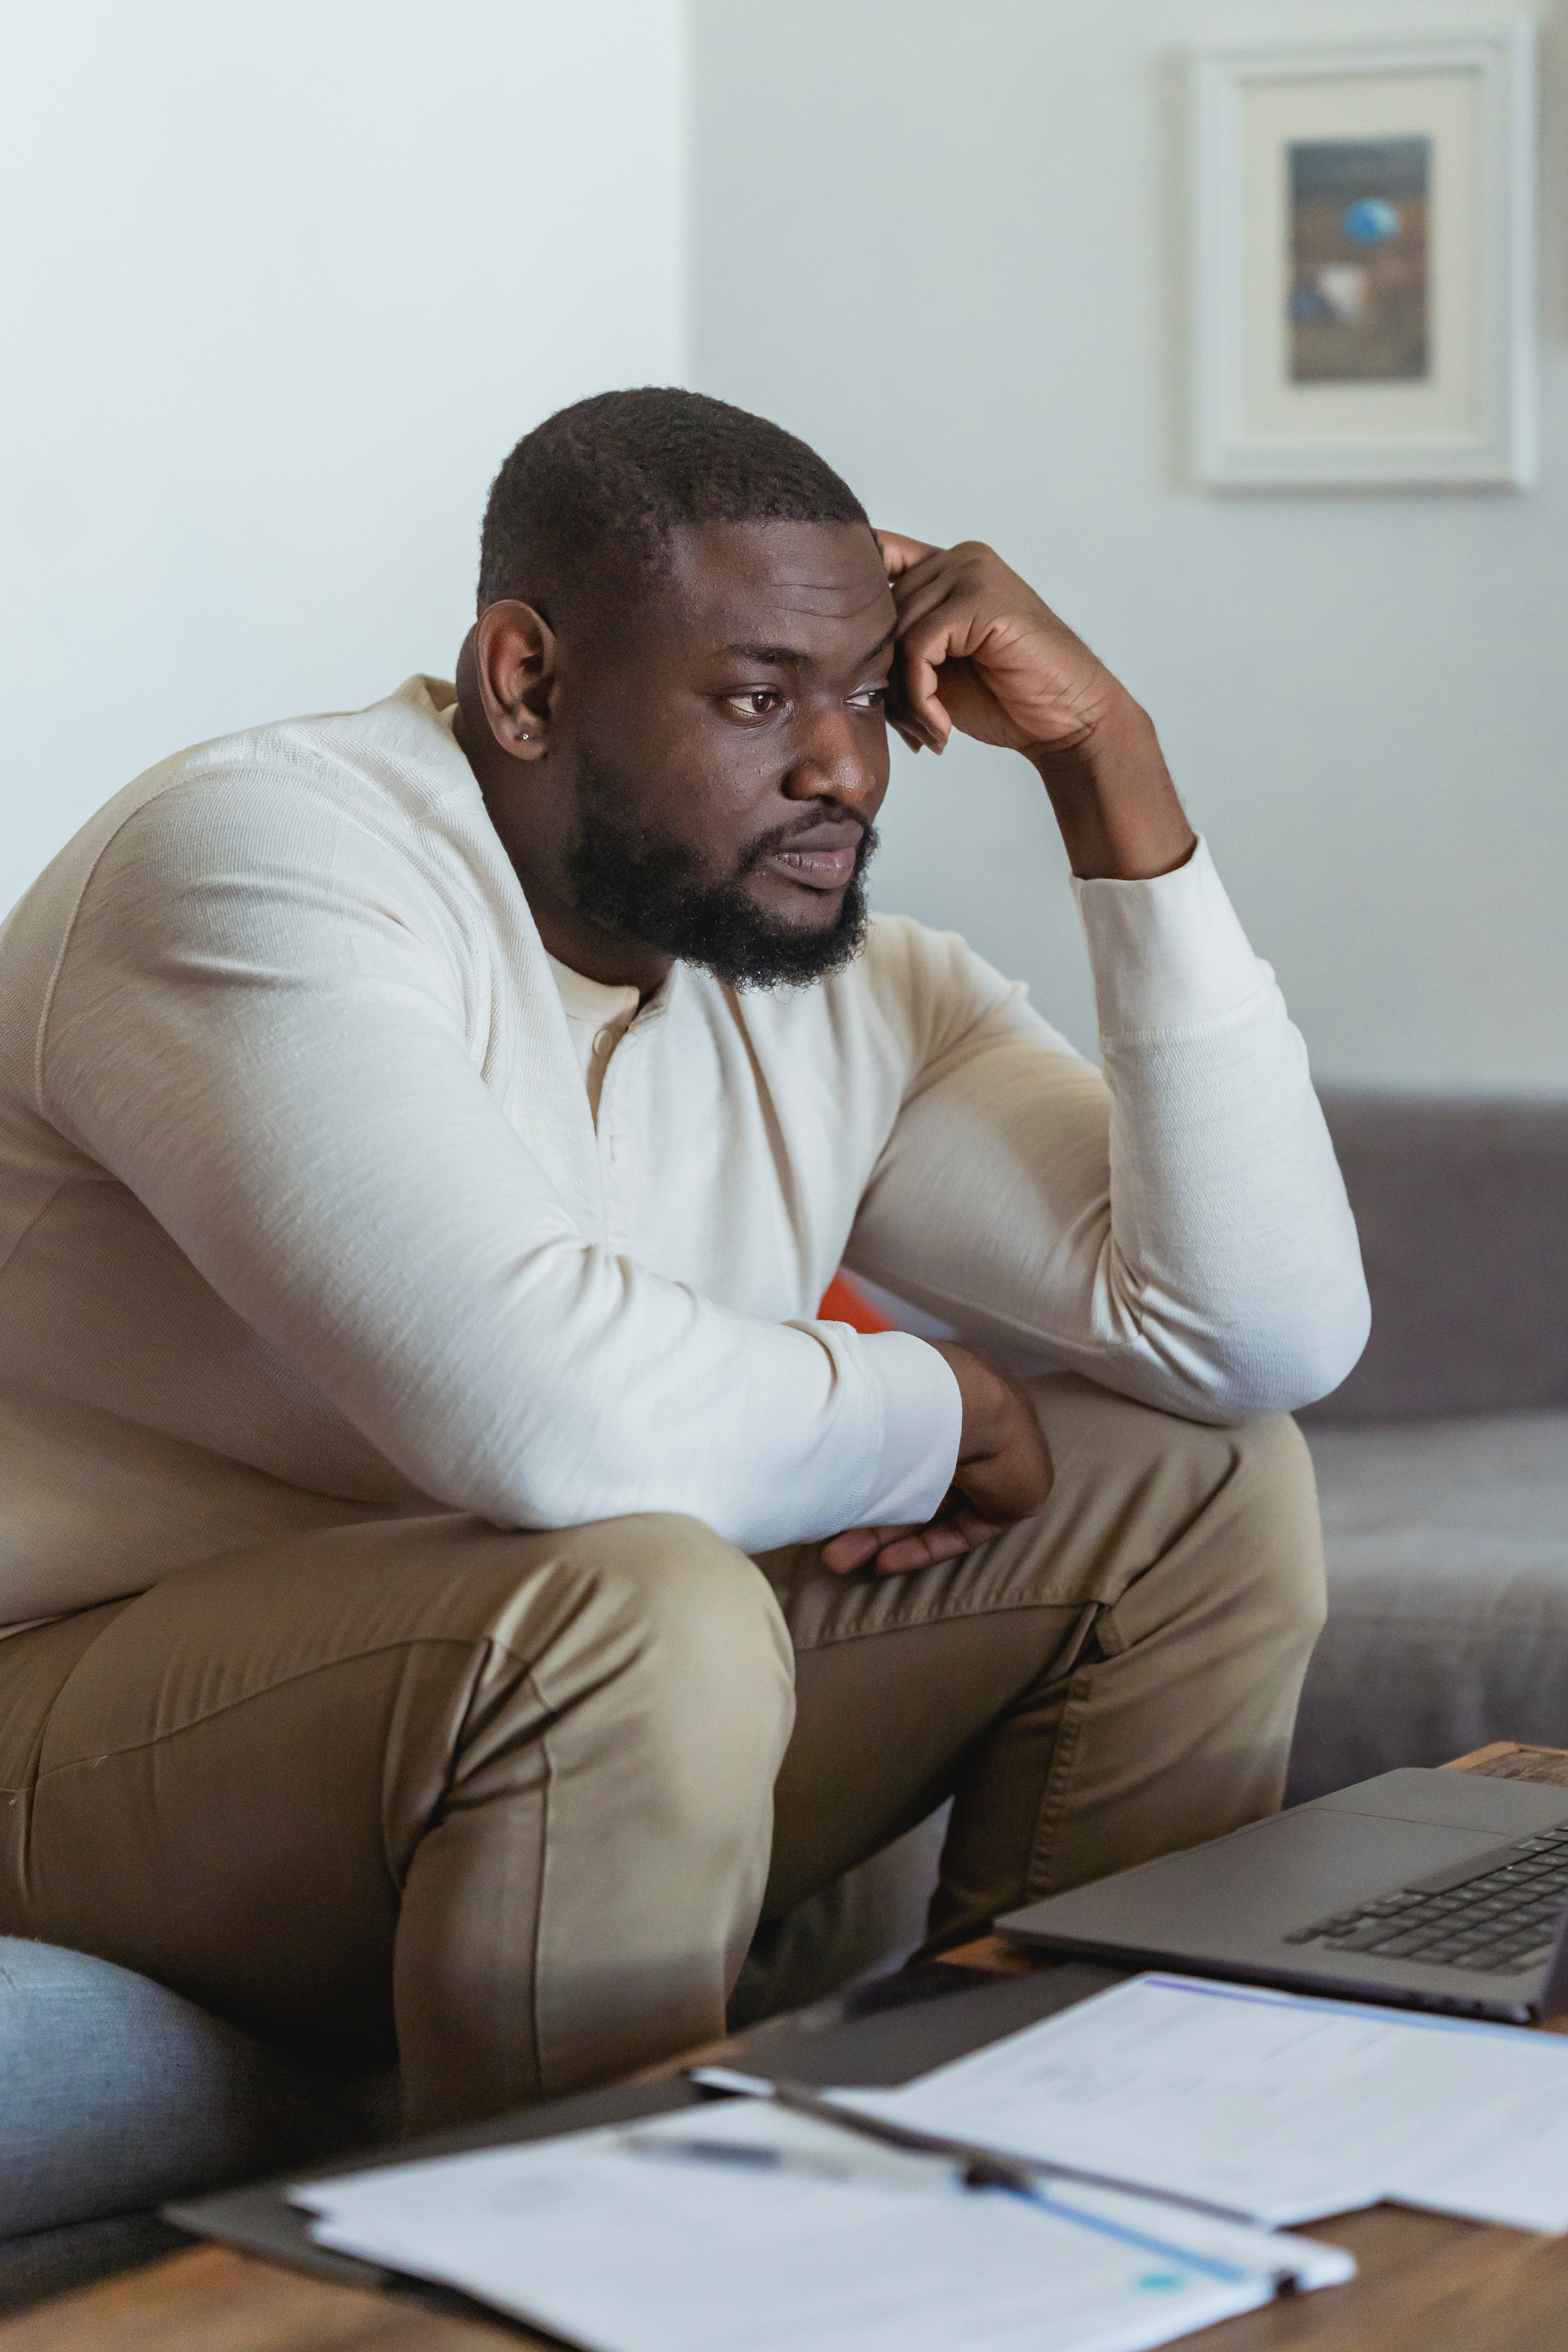 Frustrated black man sitting near laptop and thinking   Photo: Pexels